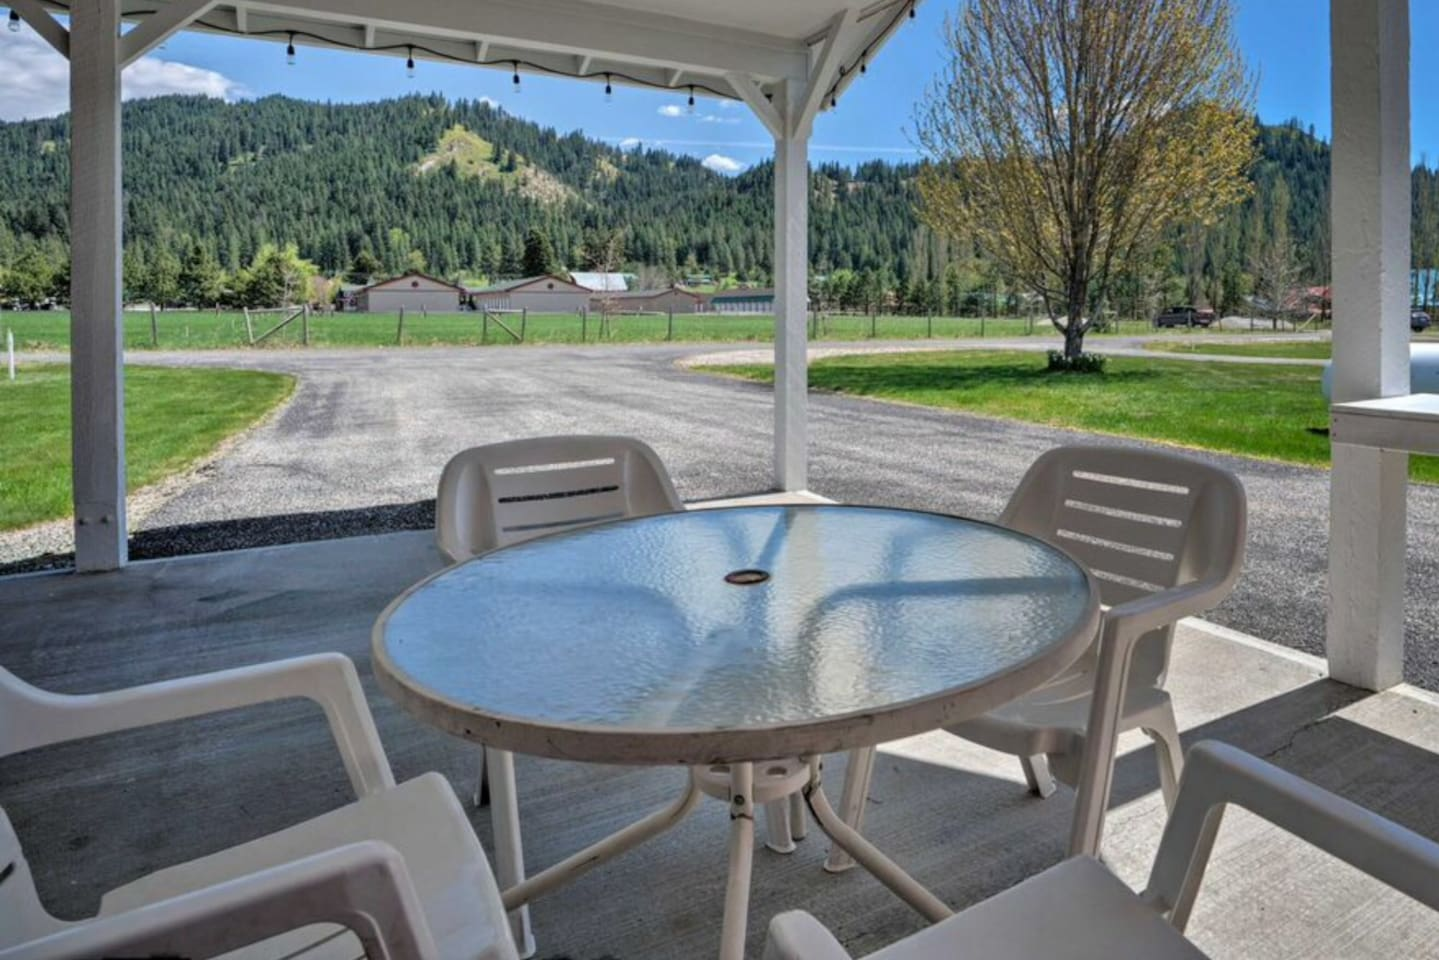 Covered sitting area with chairs for six make for a great place to enjoy a beverage or meal outside.